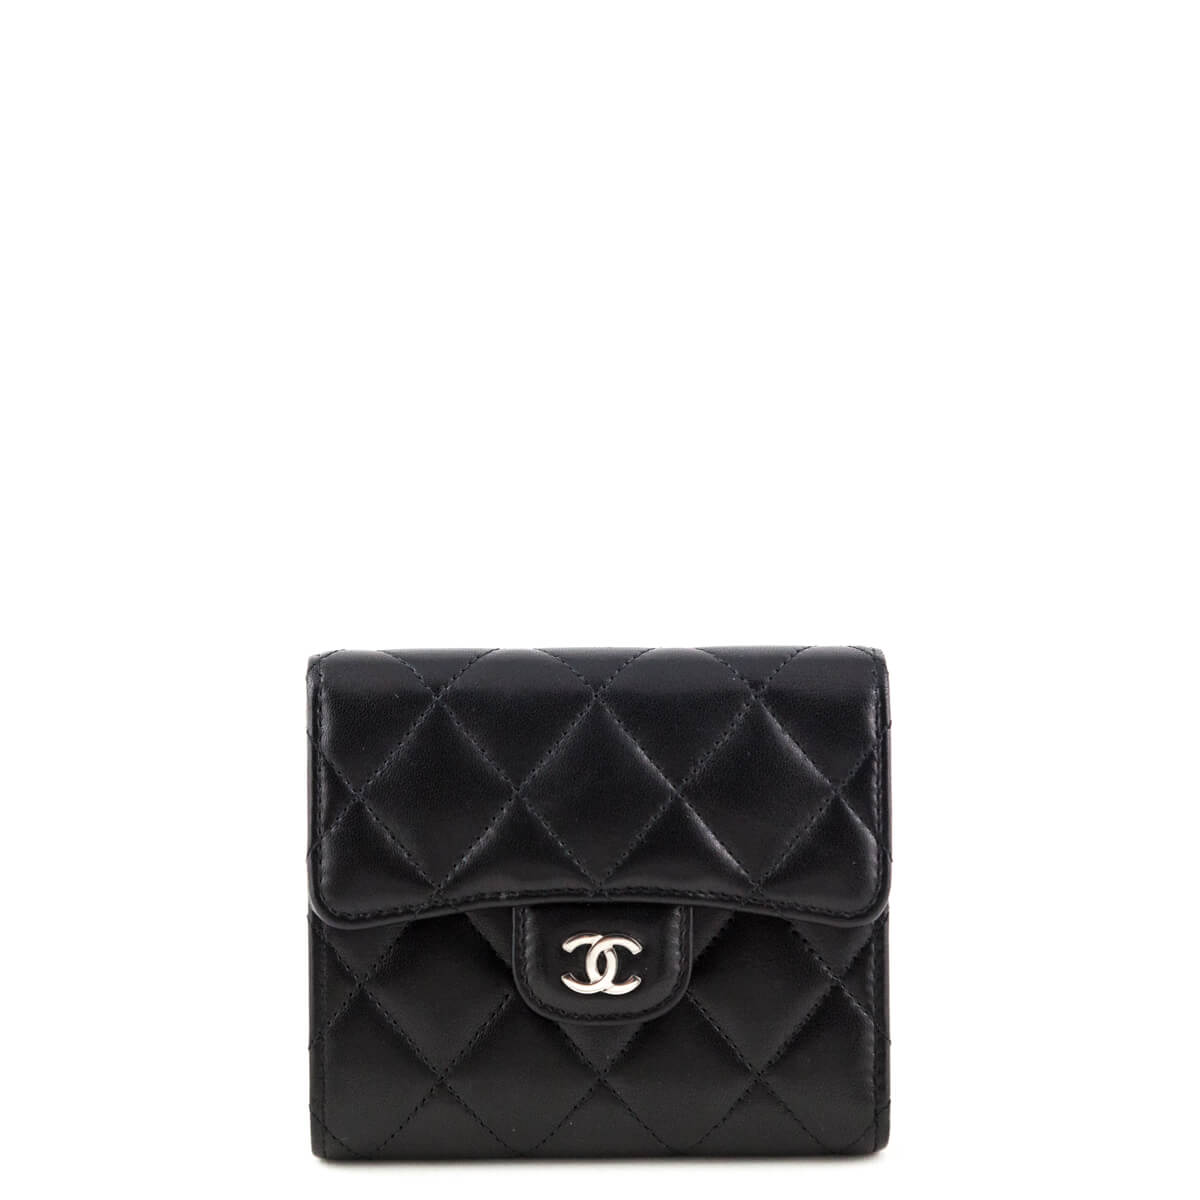 92f91e694653fa Chanel Black Lambskin Small Bifold Wallet SHW - LOVE that BAG - Preowned  Authentic Designer Handbags ...